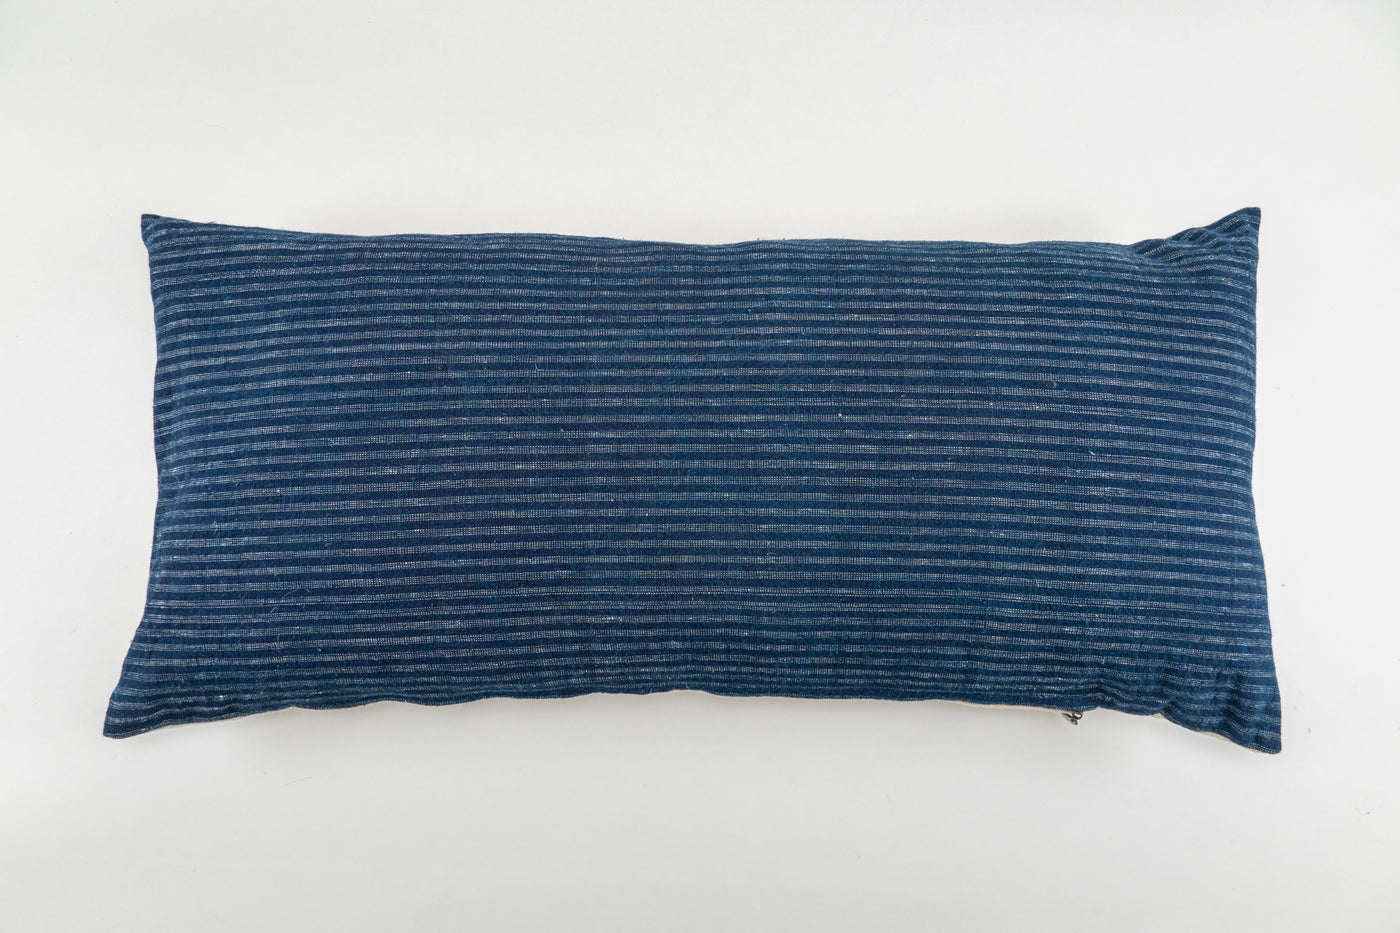 Pillow: Handwoven antique Bulgarian cotton and Hungarian hemp